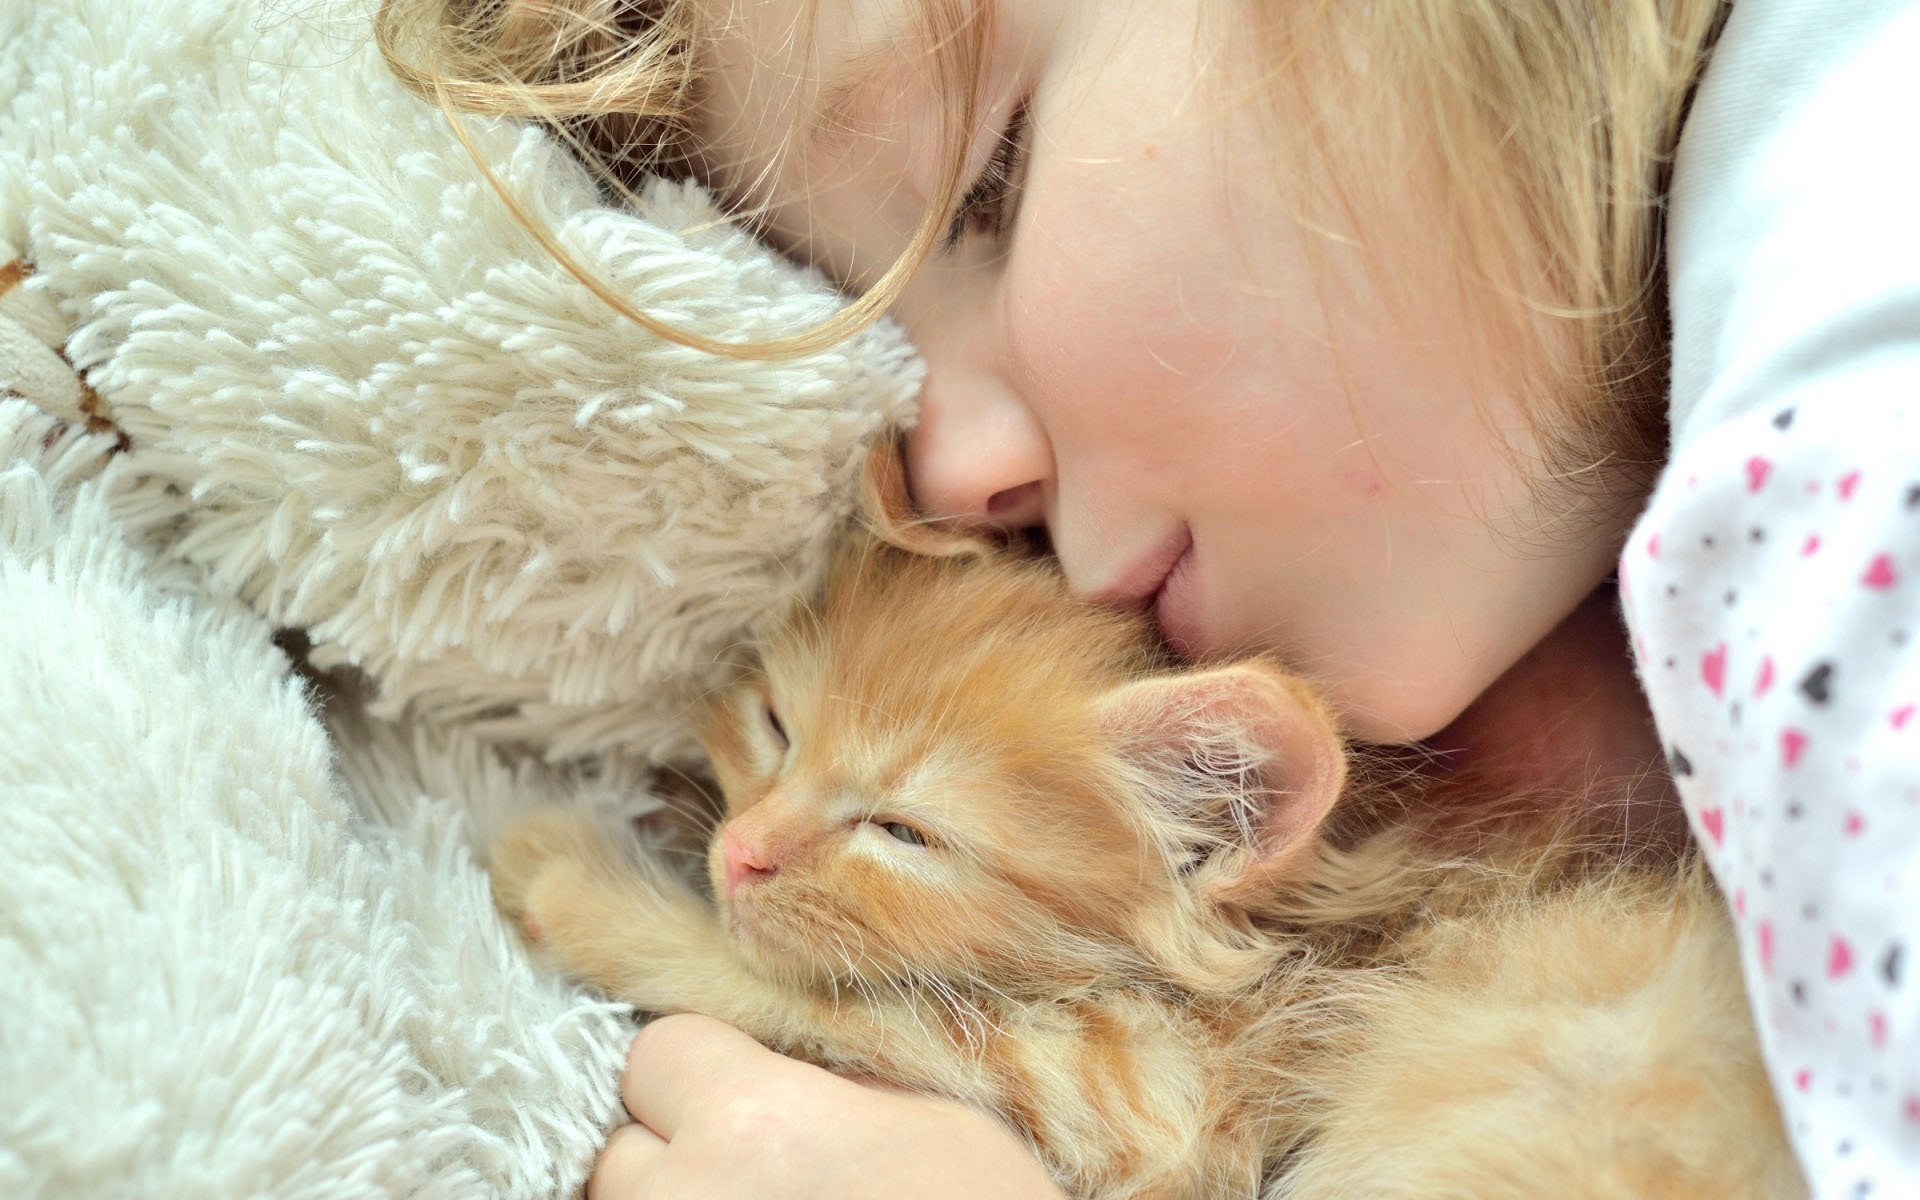 children-beauty-beautiful-angel-cute-girl-cat-nxnz